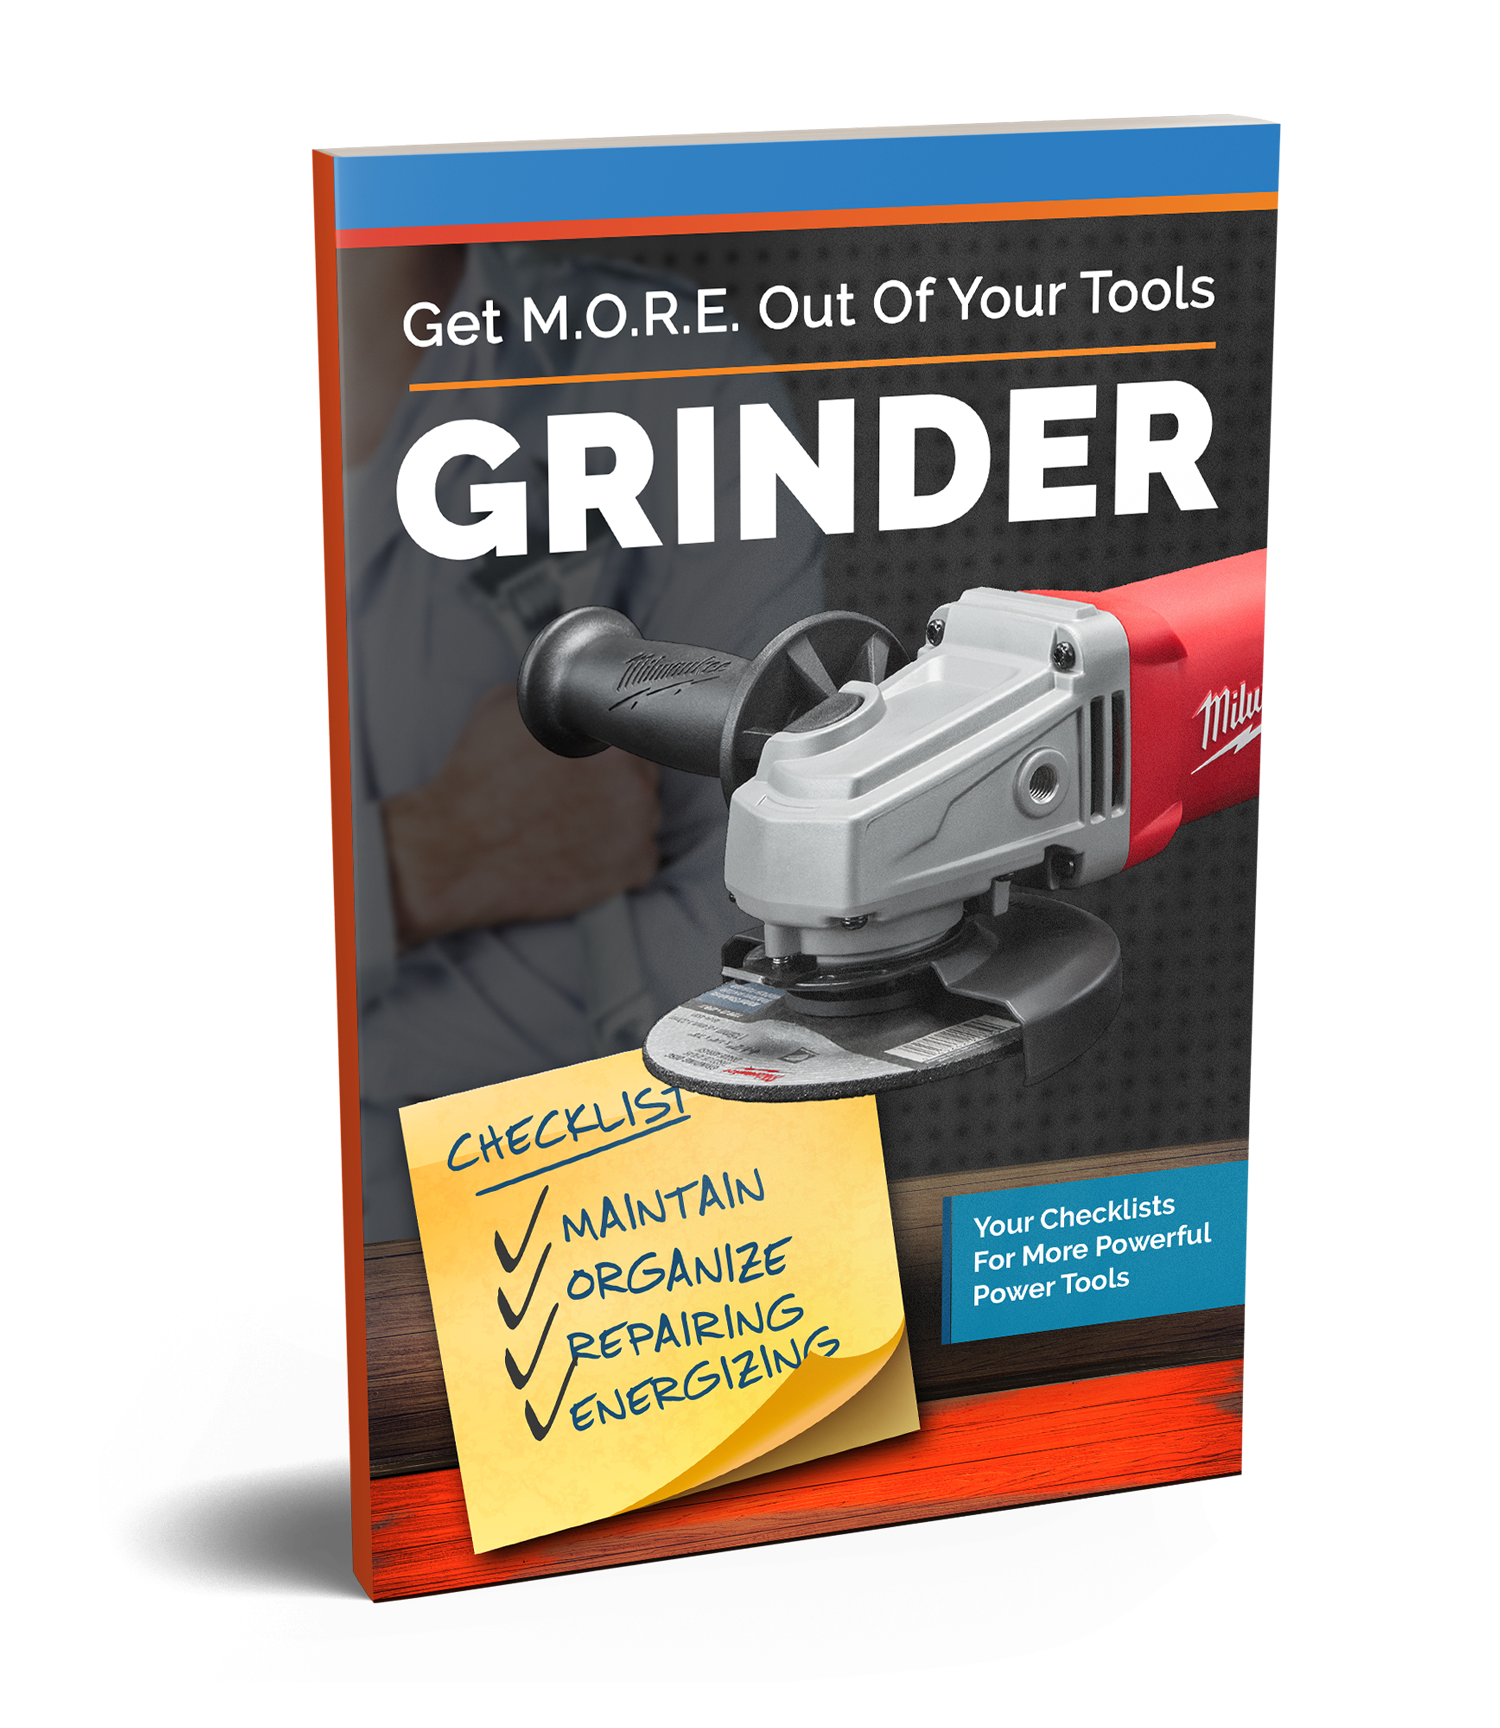 Checklists to get M.O.R.E out of your grinders